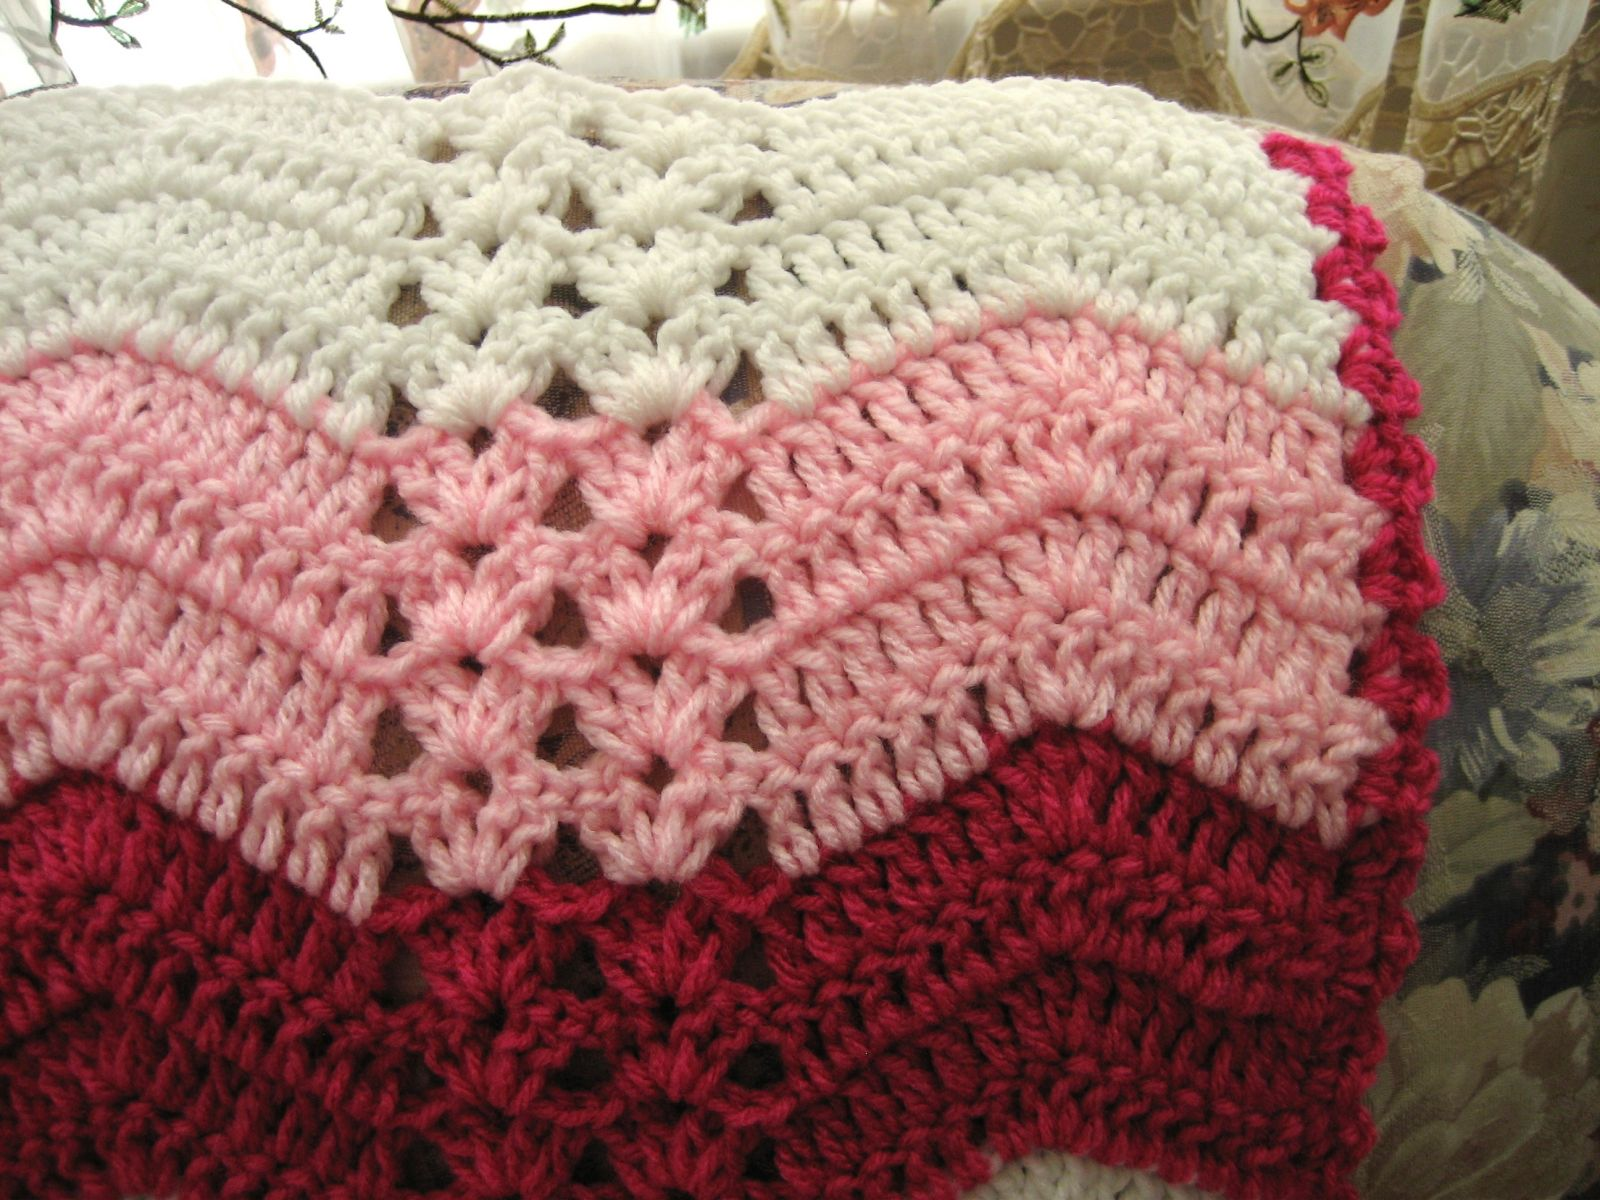 Beginner Crochet Ripple Afghan Pattern : Ripple Crochet Pattern Related Keywords & Suggestions ...